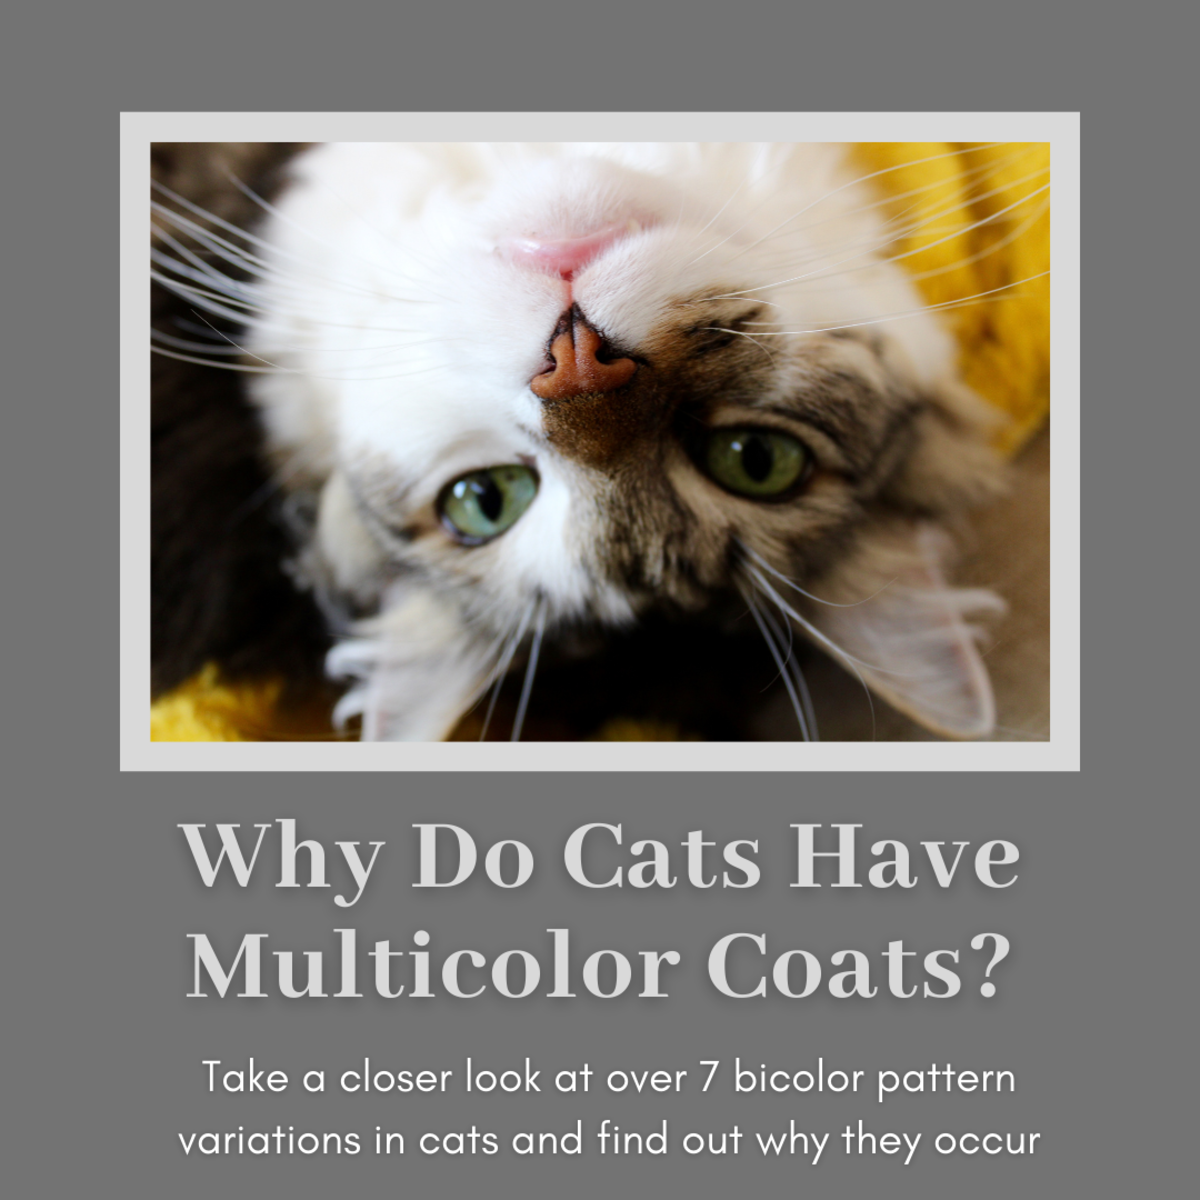 7+ Bicolor Pattern Variations in Cats (and Why They Occur)